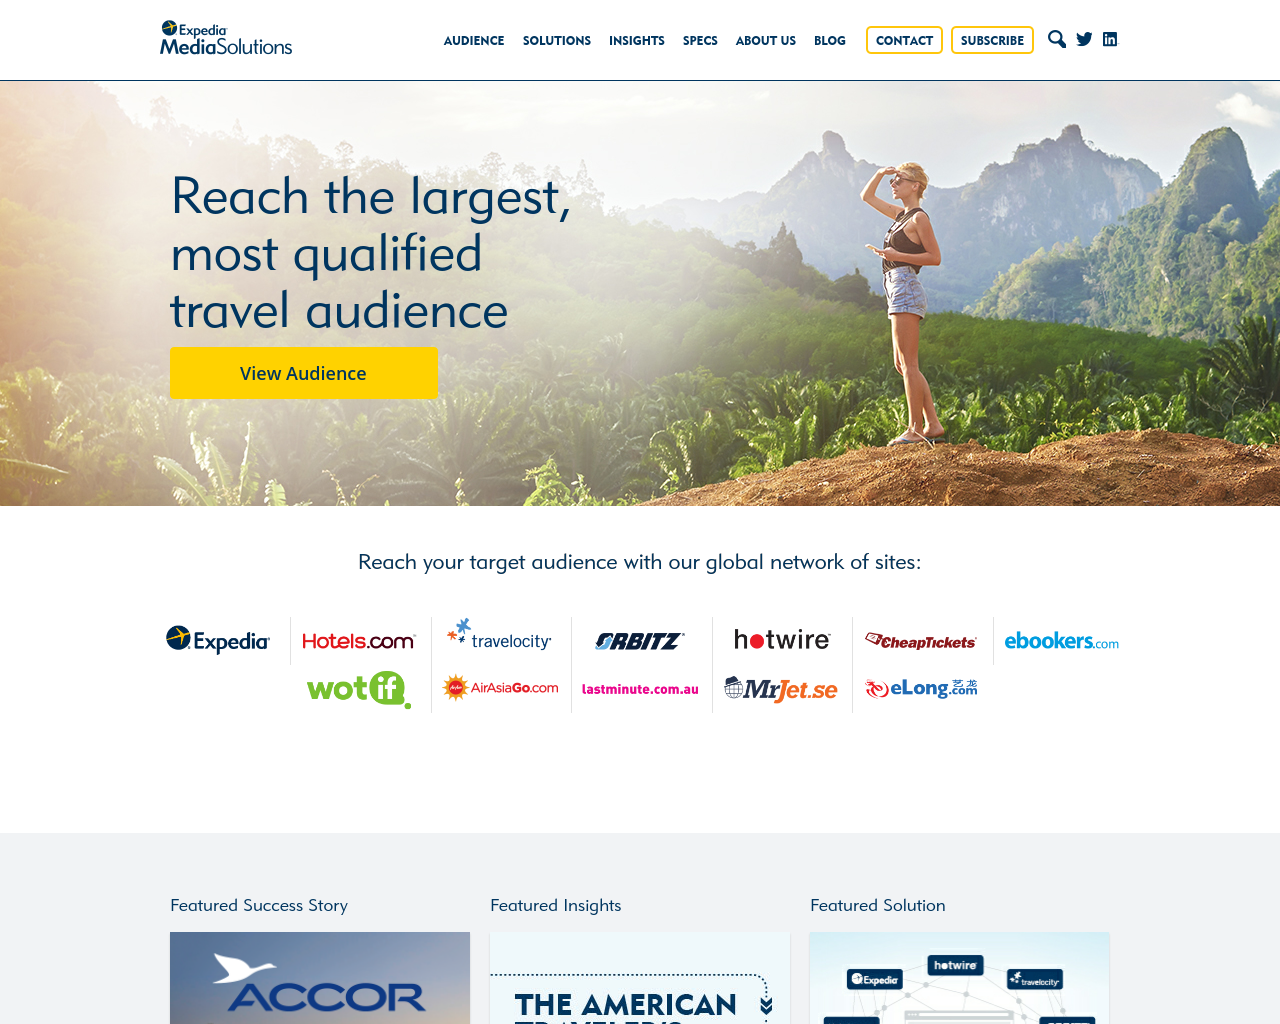 Expedia-Media-Solutions-Advertising-Reviews-Pricing